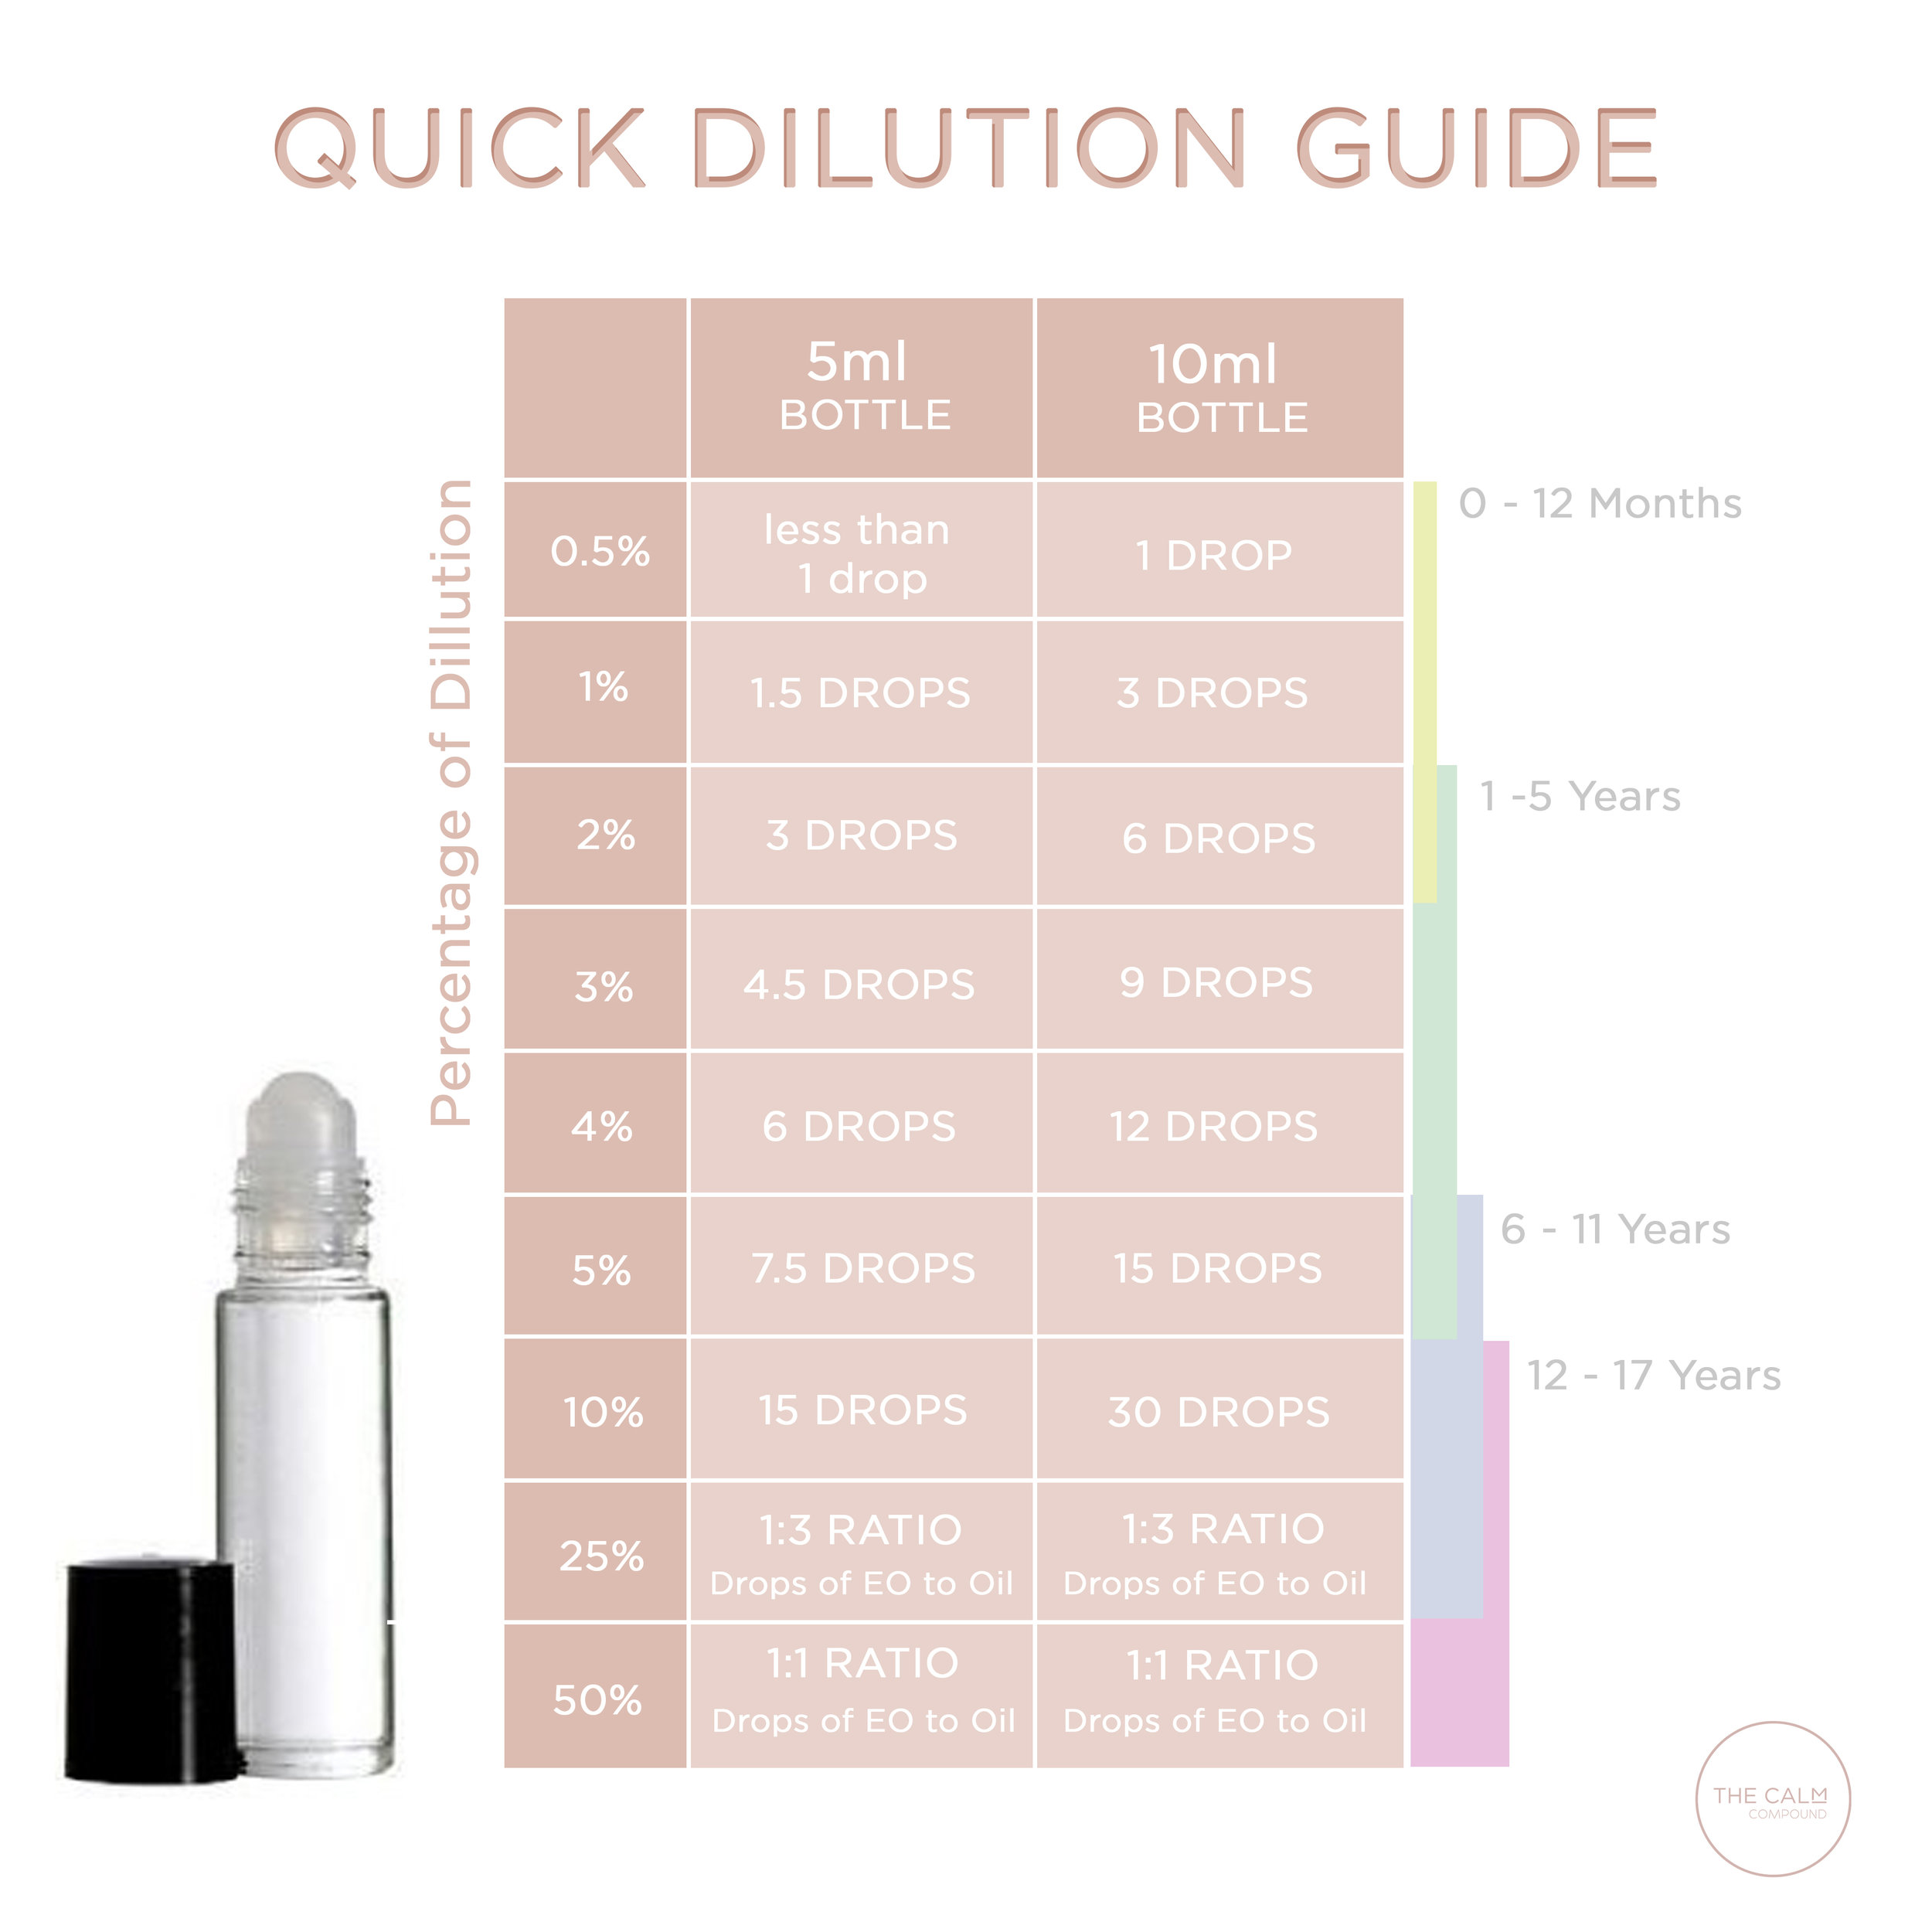 Quick Dilution Guide.jpg